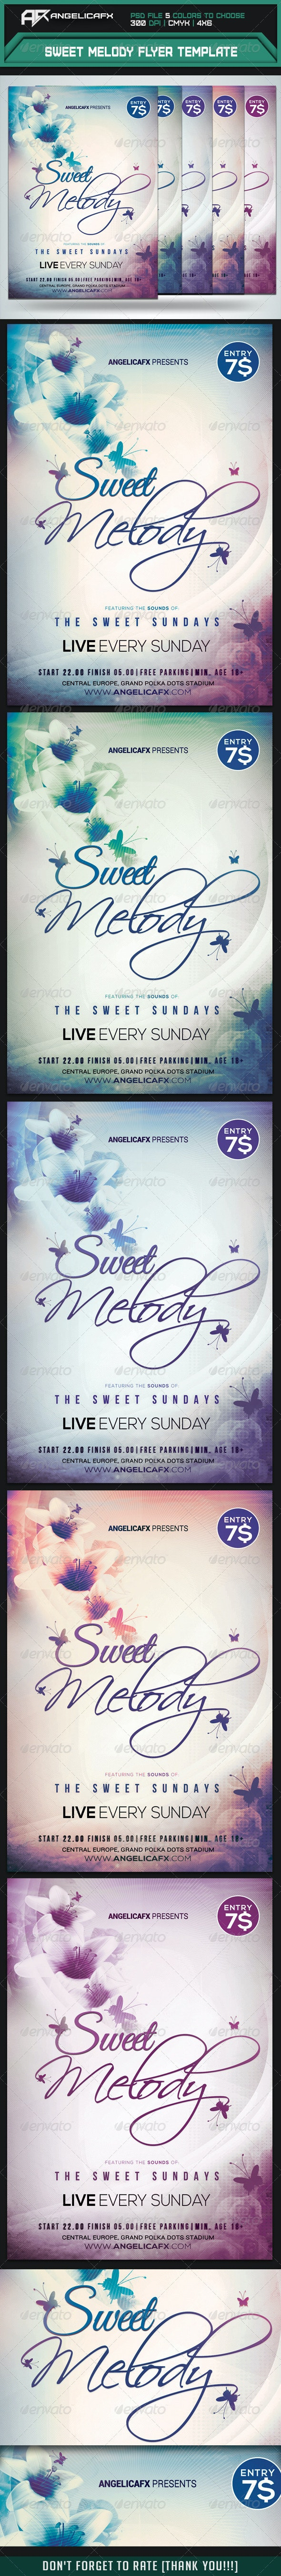 Sweet Melody Flyer Template - Flyers Print Templates